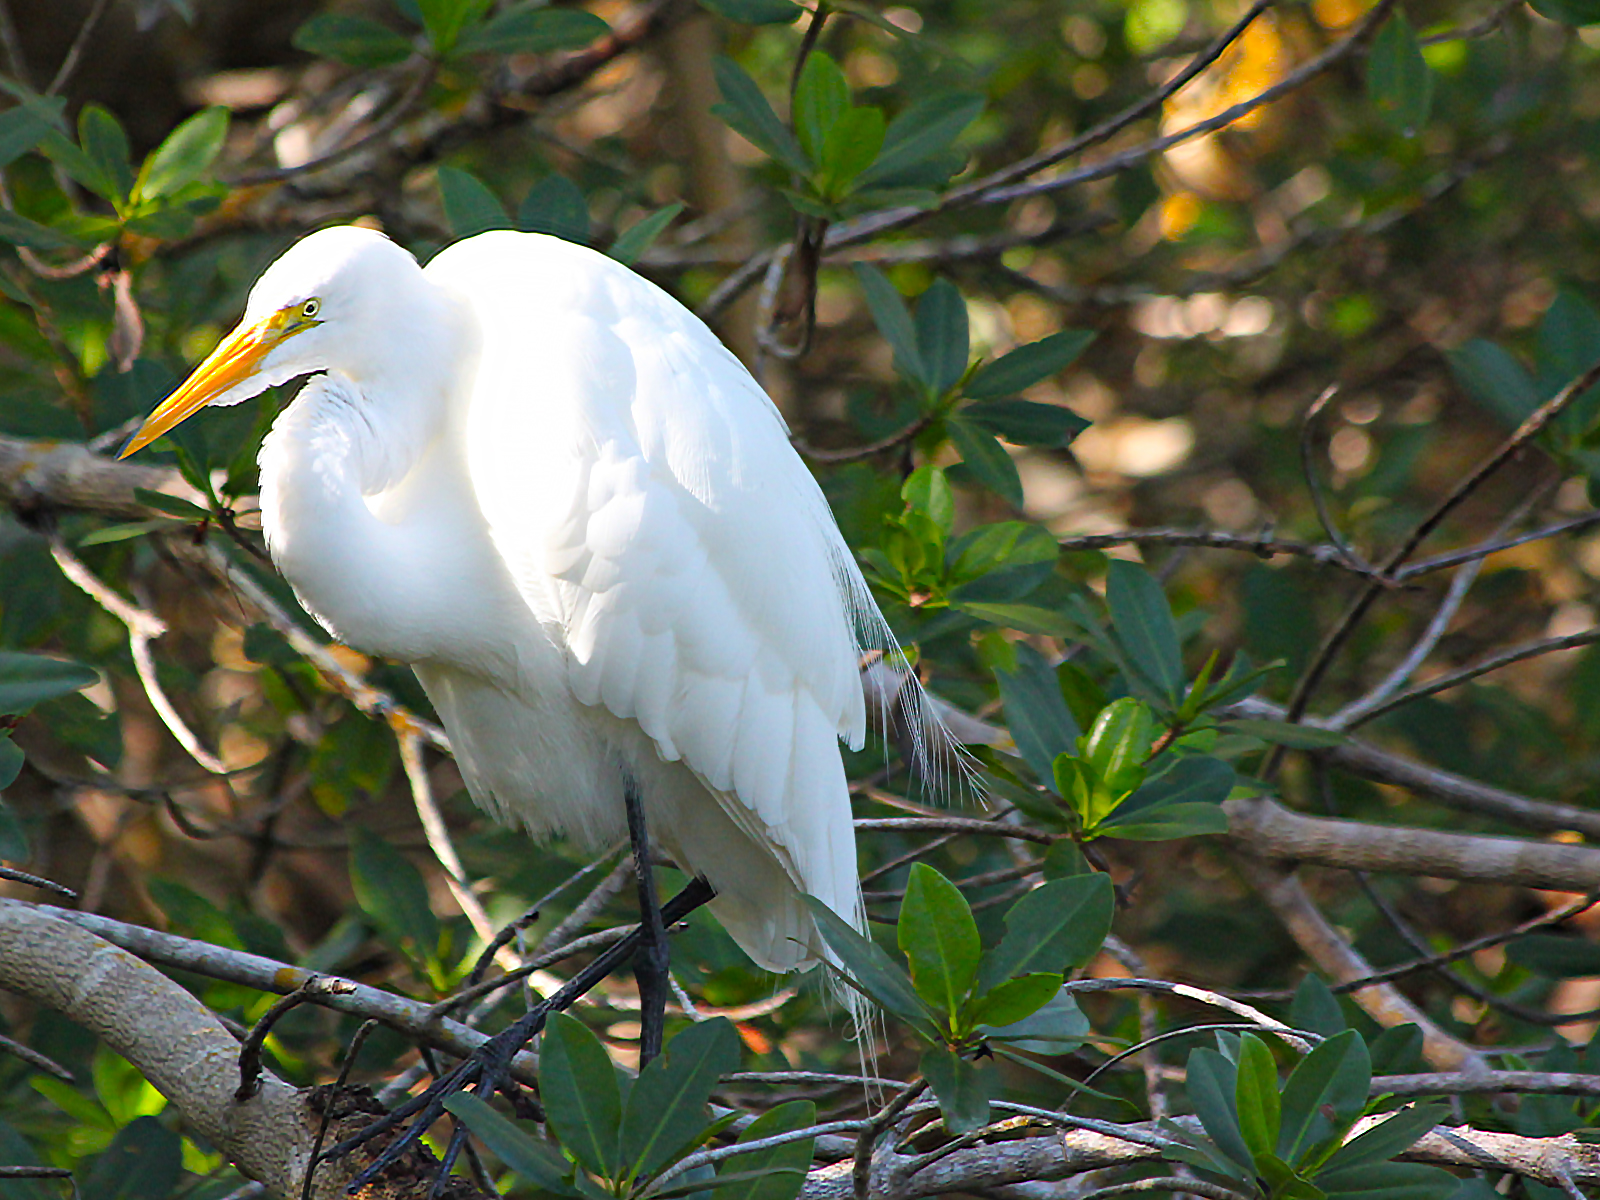 Great egret in J.N. Dig Darling National Wildlife Refuge, Sanibel Island, Florida